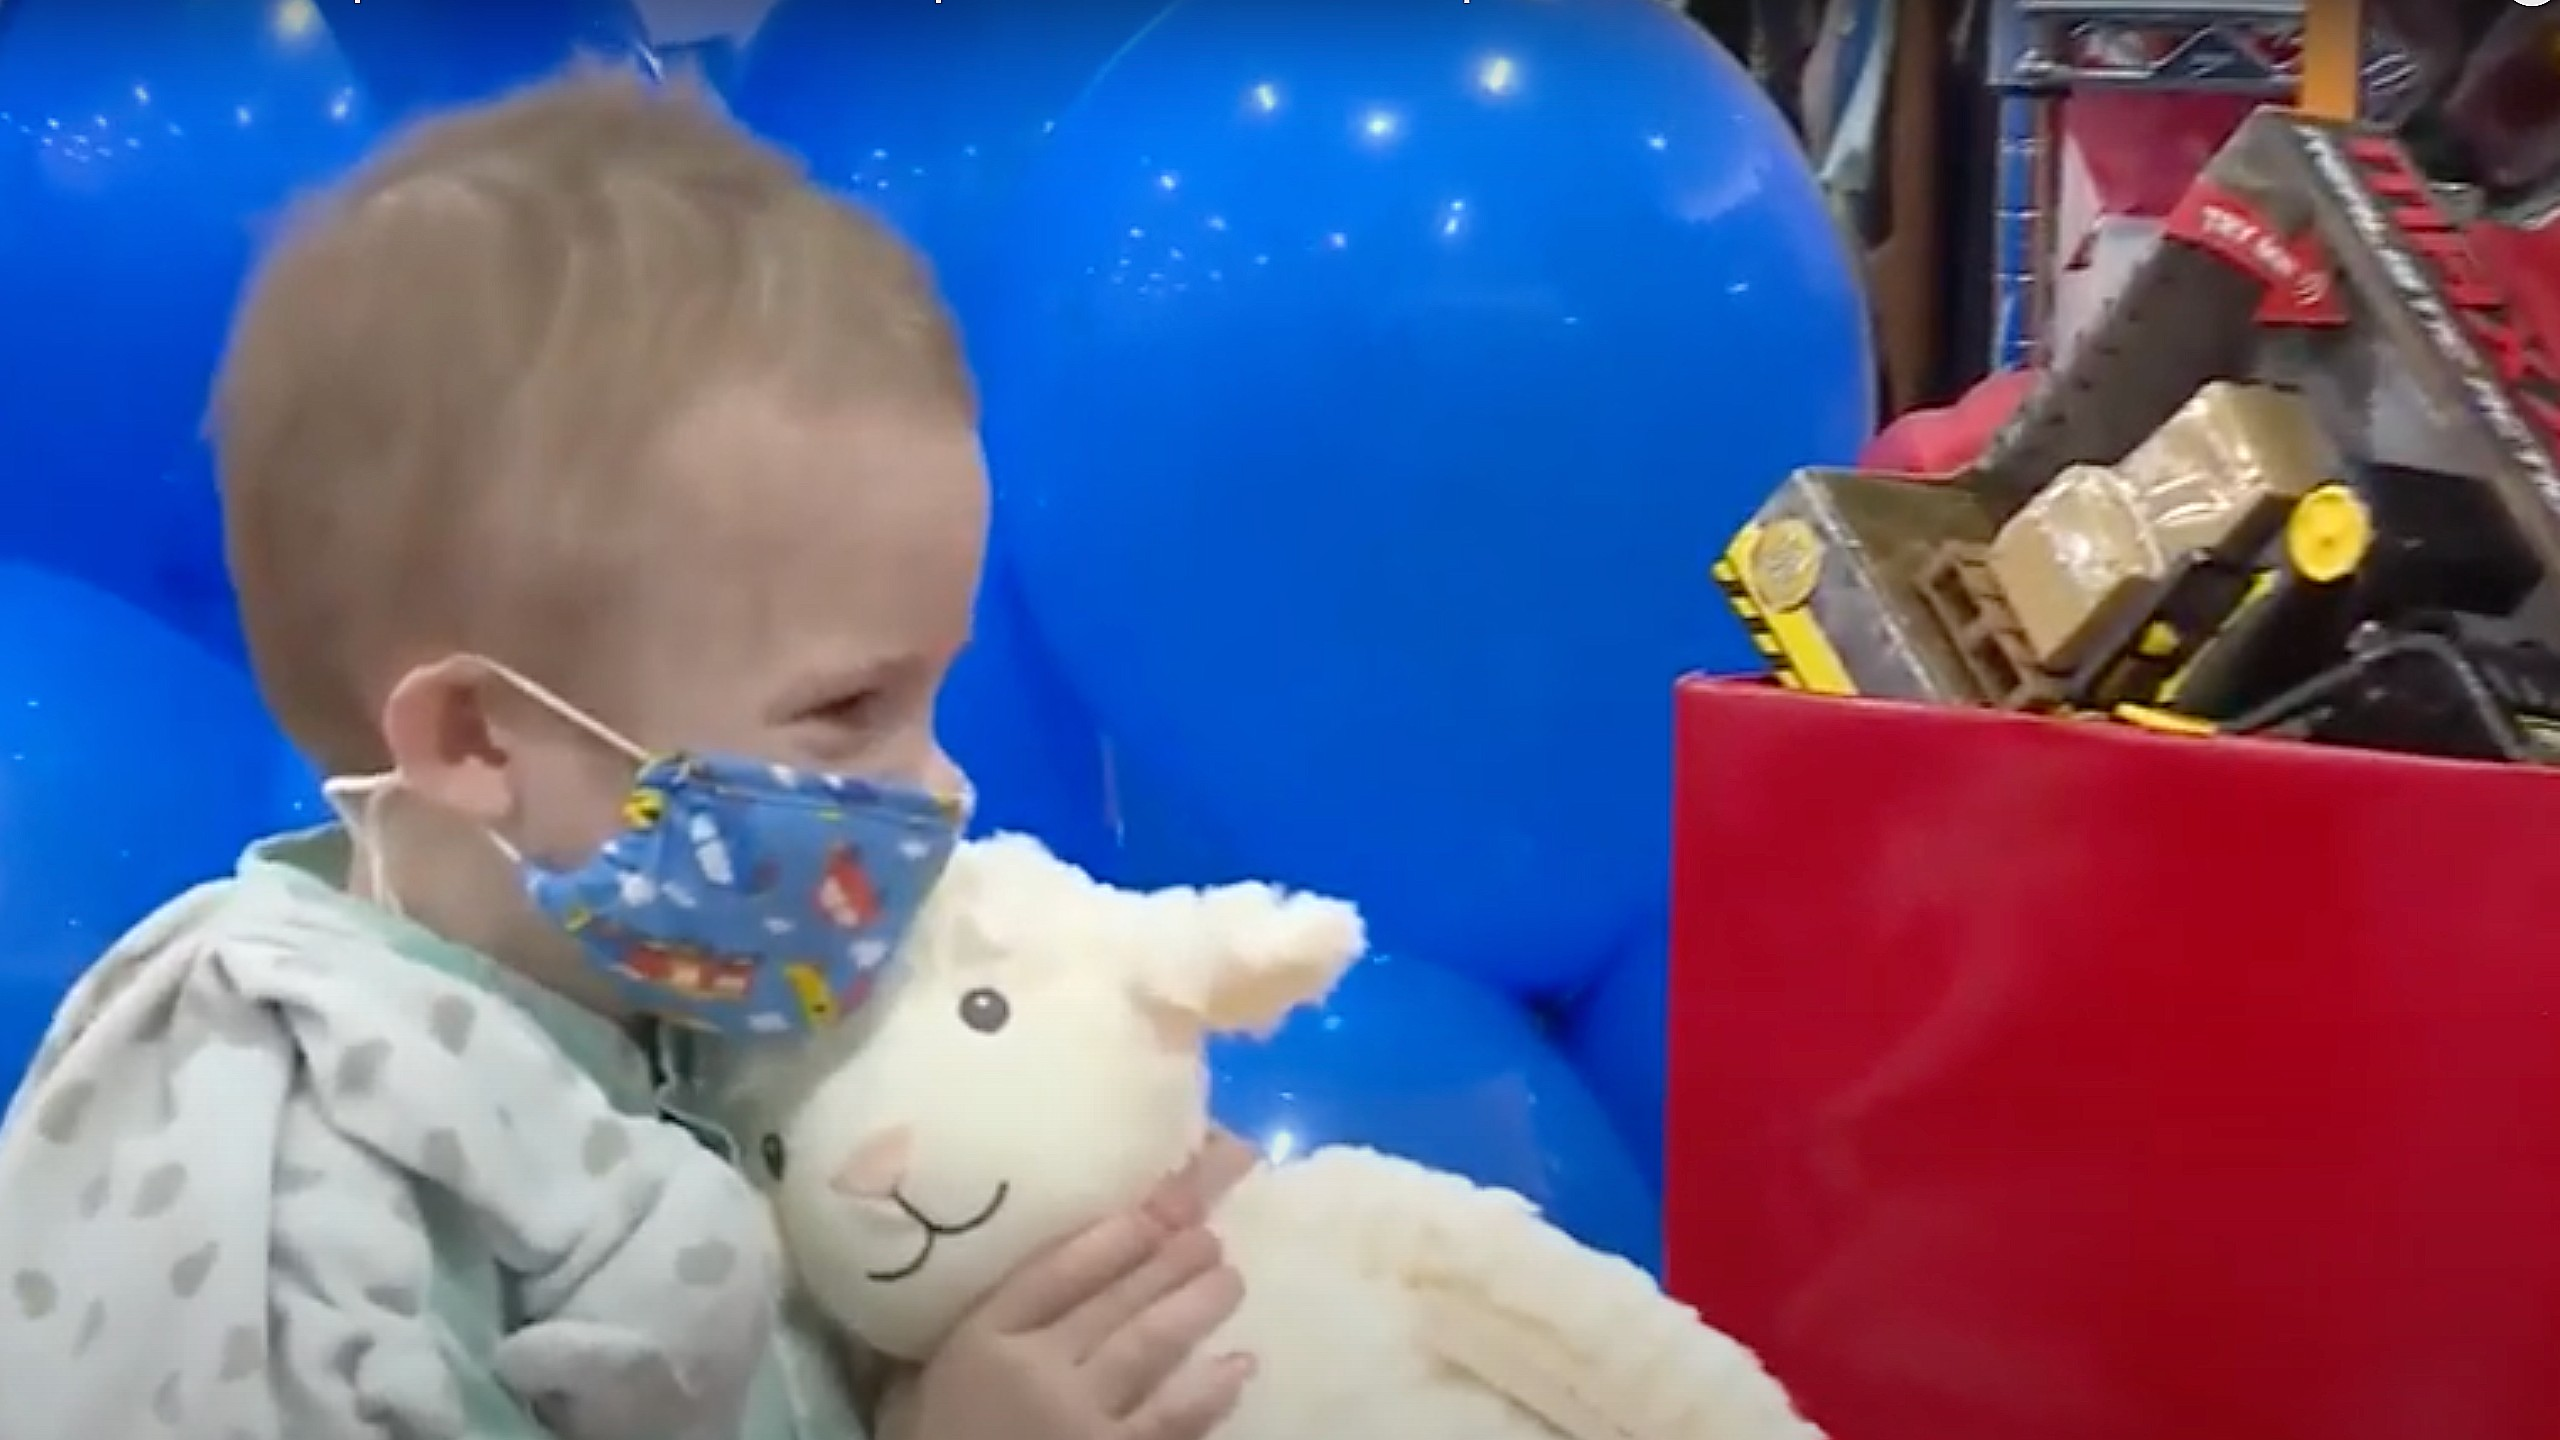 5-year-old uses wish to buy comfortable sheets for hospitalized kids